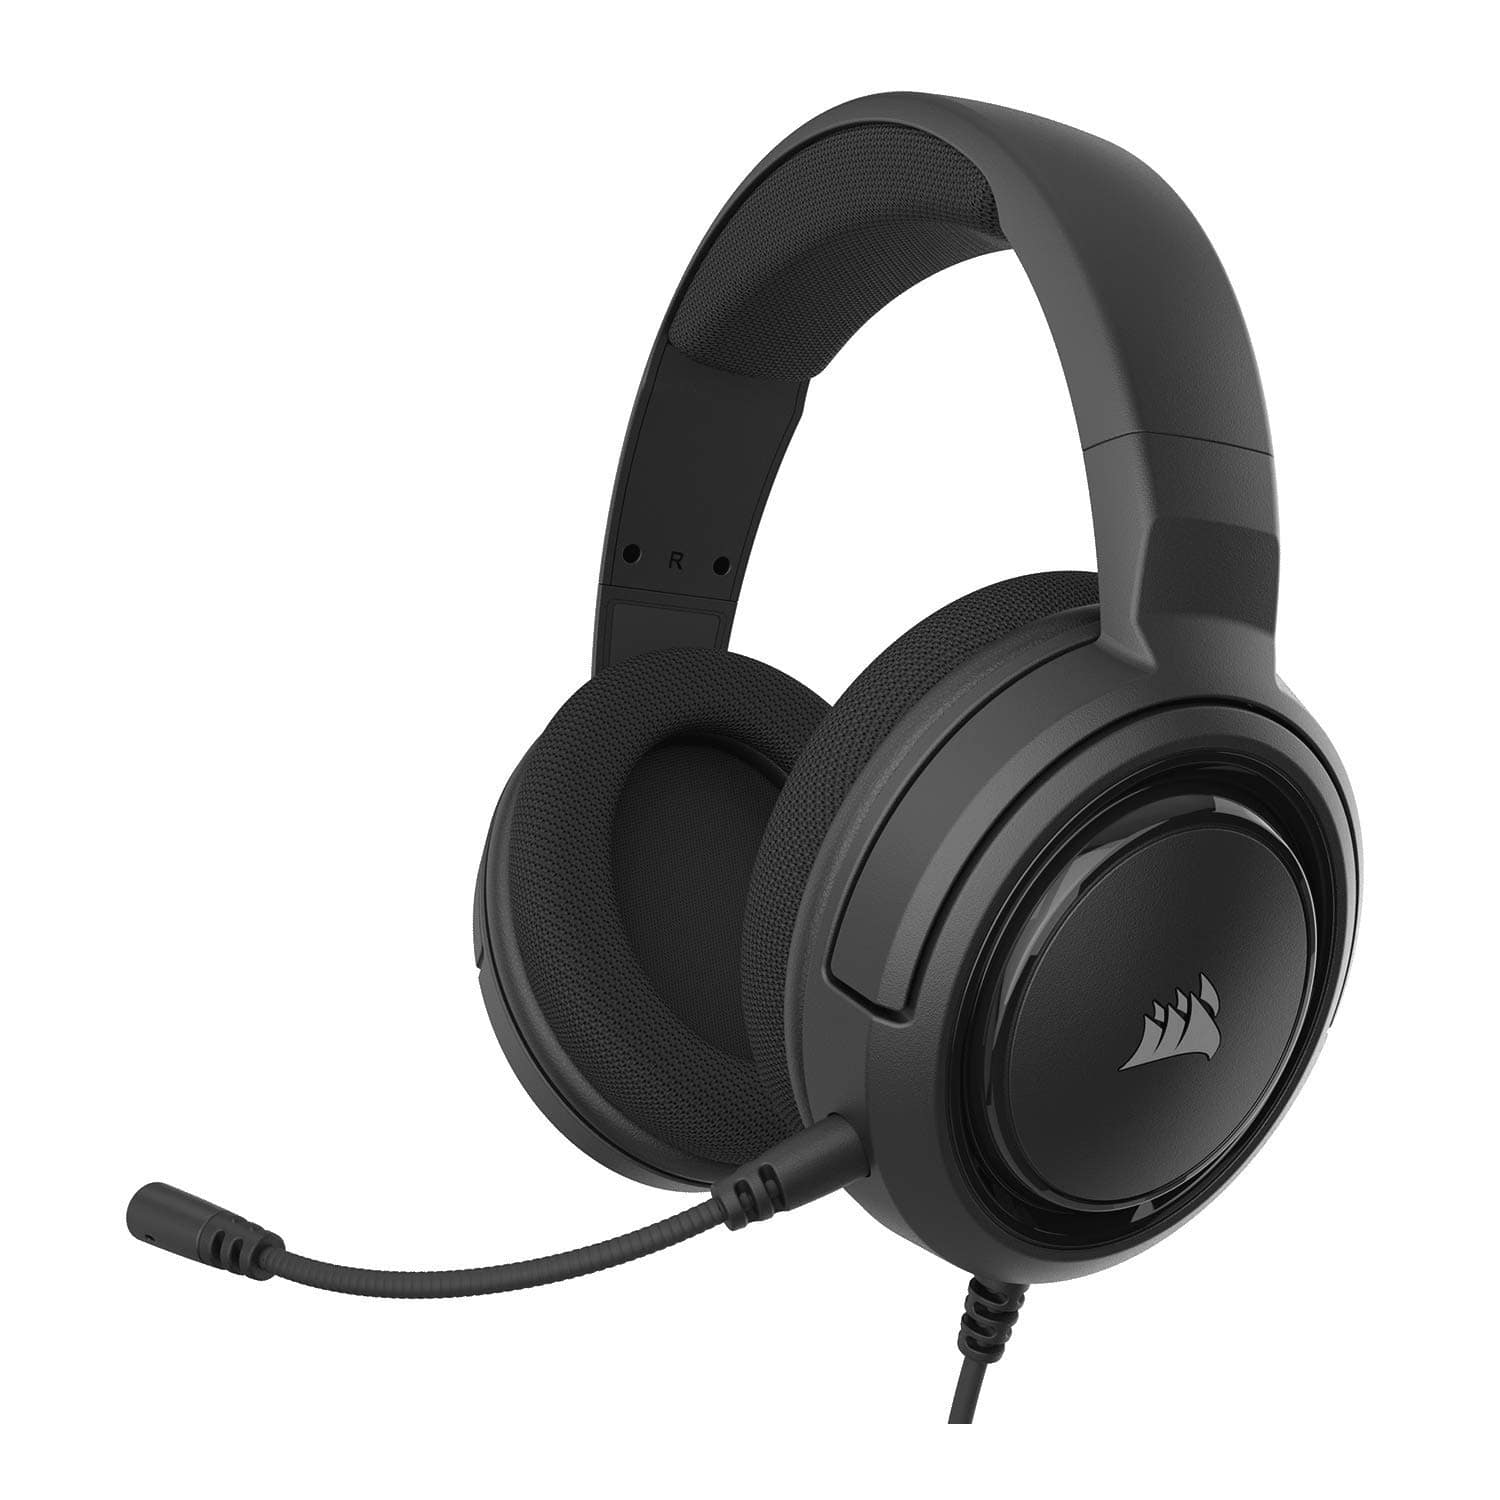 Corsair HS35 - Stereo Gaming Headset - Memory Foam Earcups - Headphones Work with PC, Mac, Xbox One, PS4, Switch, iOS and Android – Carbon $29.99